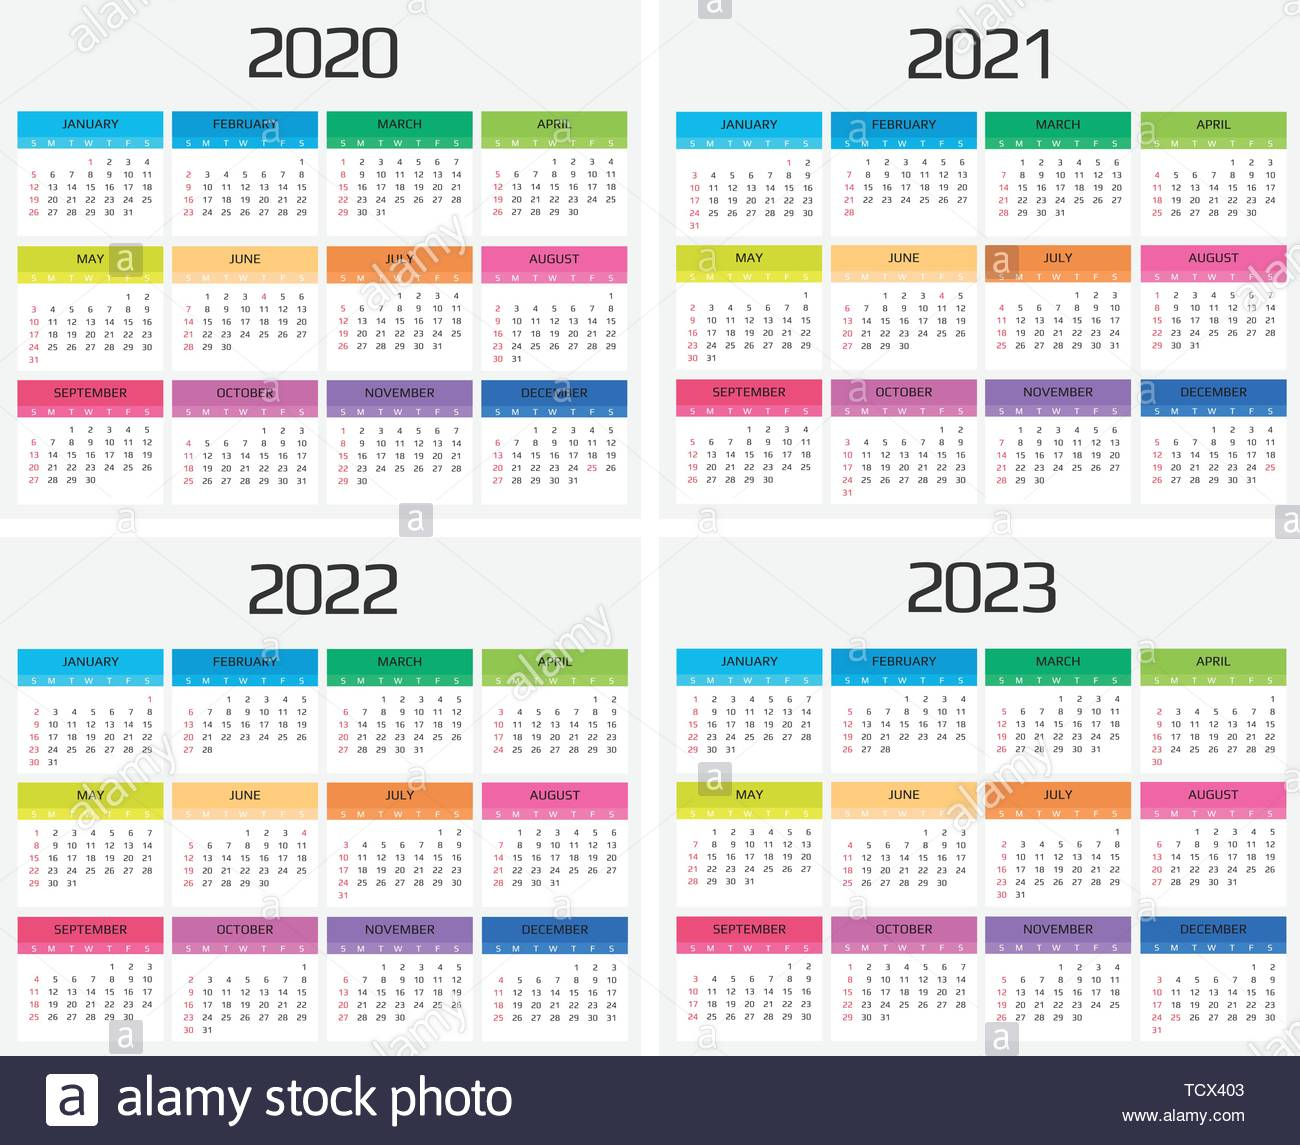 Calendar 2020, 2021, 2022, 2023 Template. 12 Months. Include regarding Three Year Printable Calendar 2020 To 2023